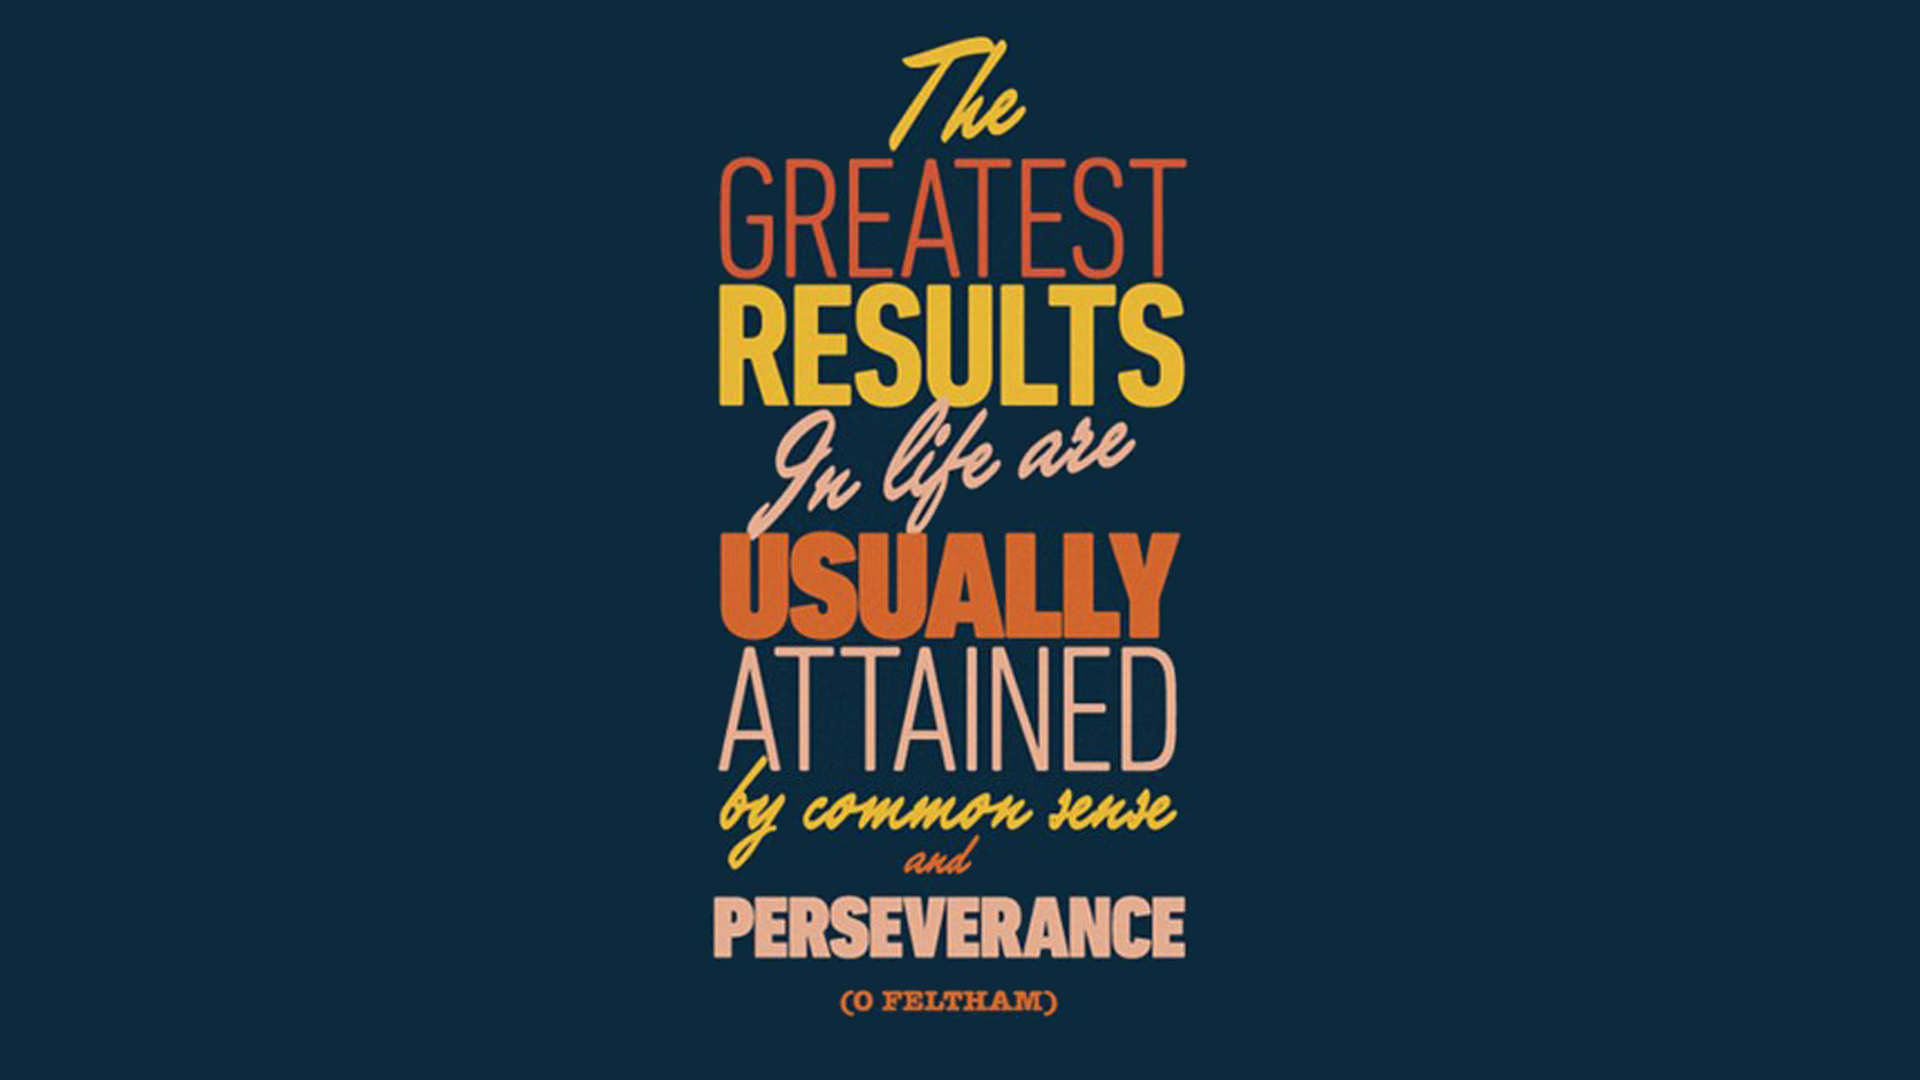 Inspirational Quotes About Perseverance 35 Famous Positive Quotes About Life Wisdom And Successfamous